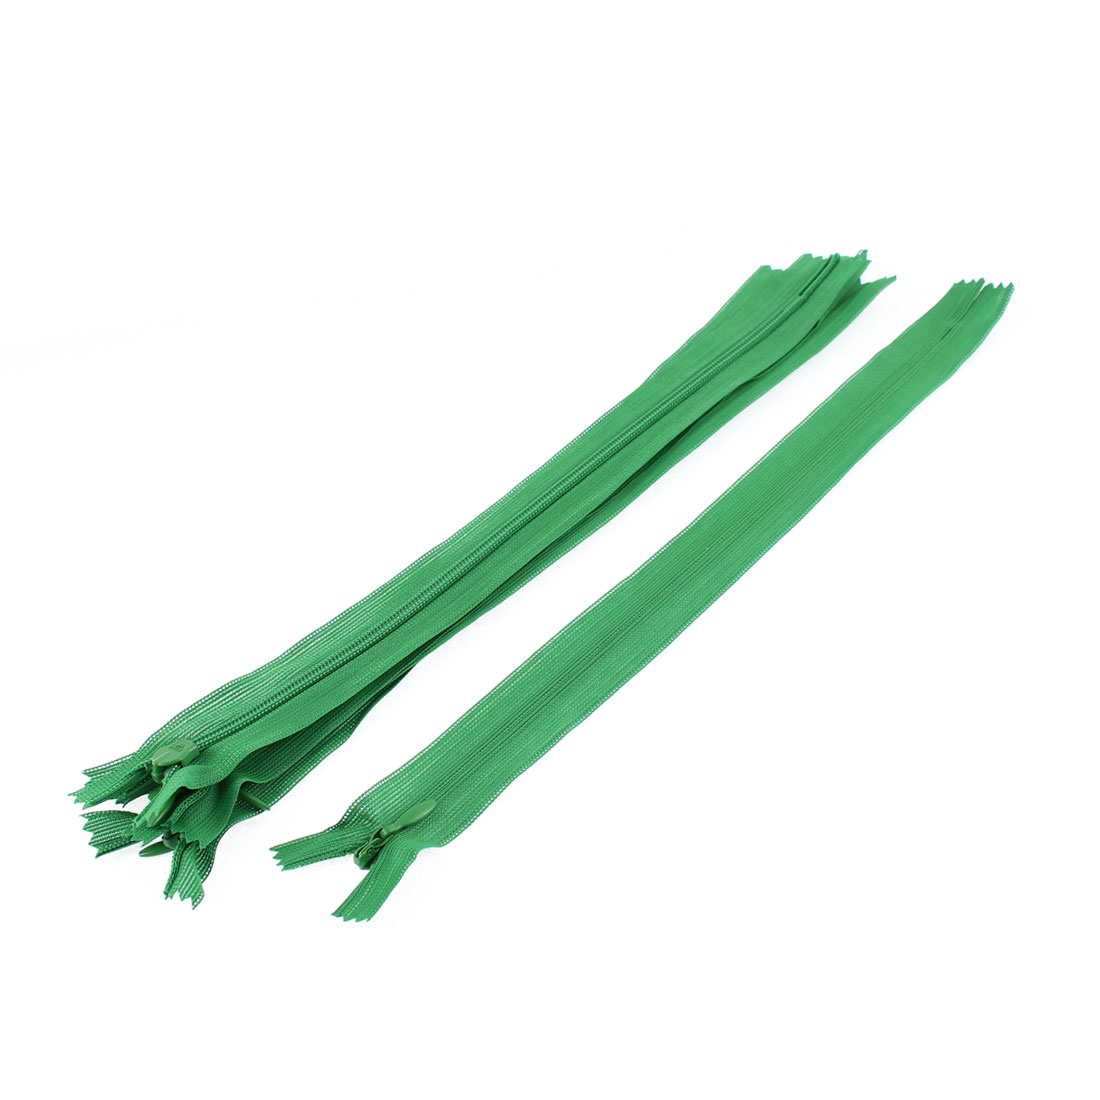 Clothes Invisible Nylon Coil Zippers Tailor Sewing Craft Tool Green 25cm 5 Pcs